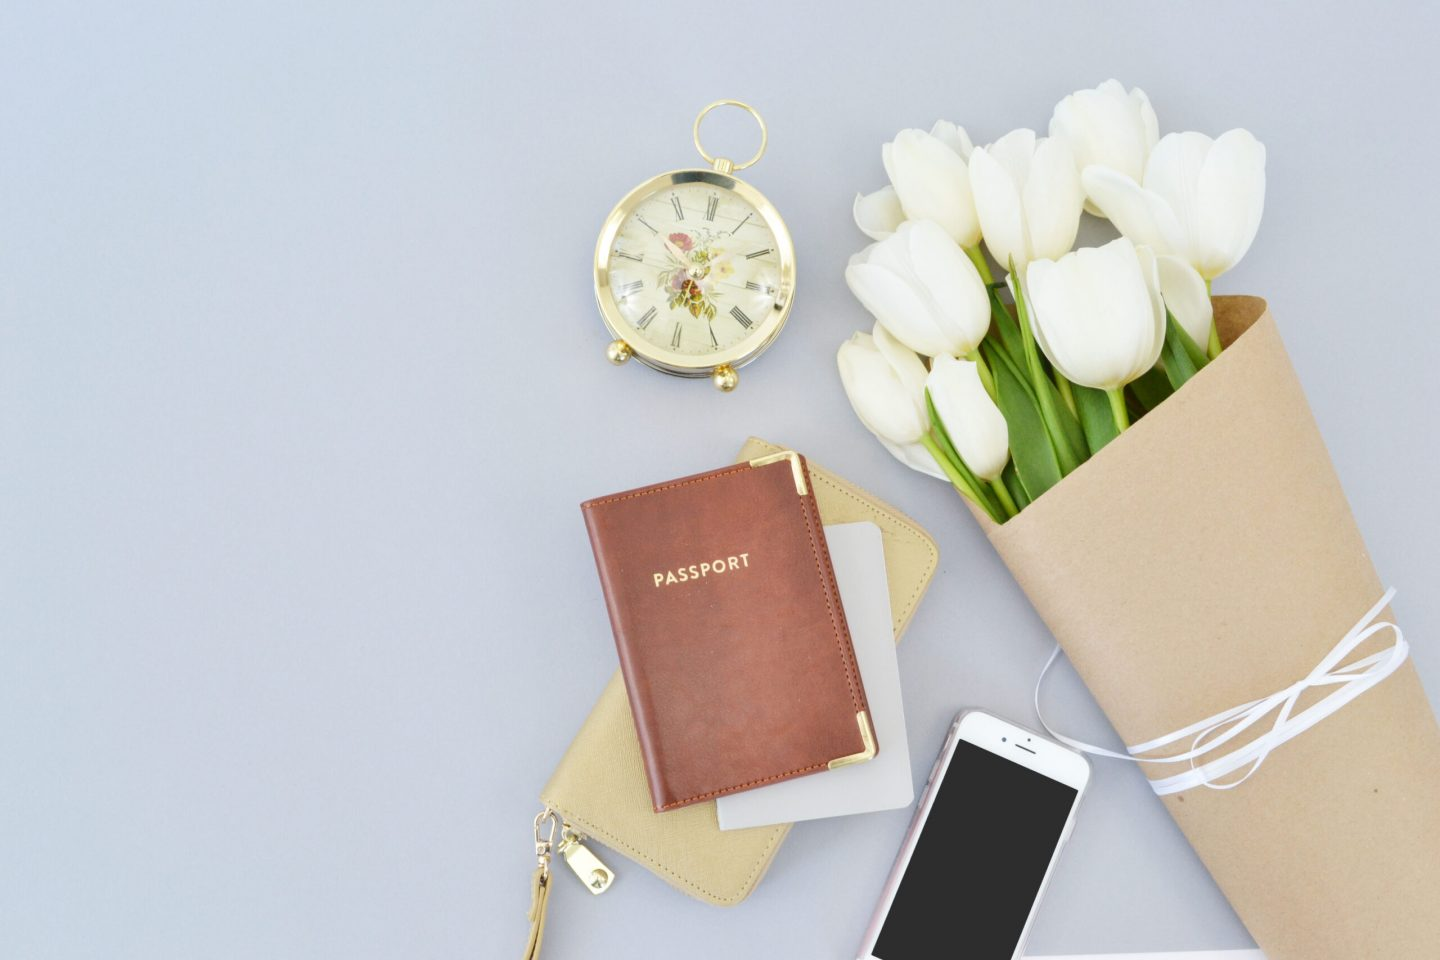 a brown passport wiht flowers, a clock, phone and wallet, travel documents and essentials